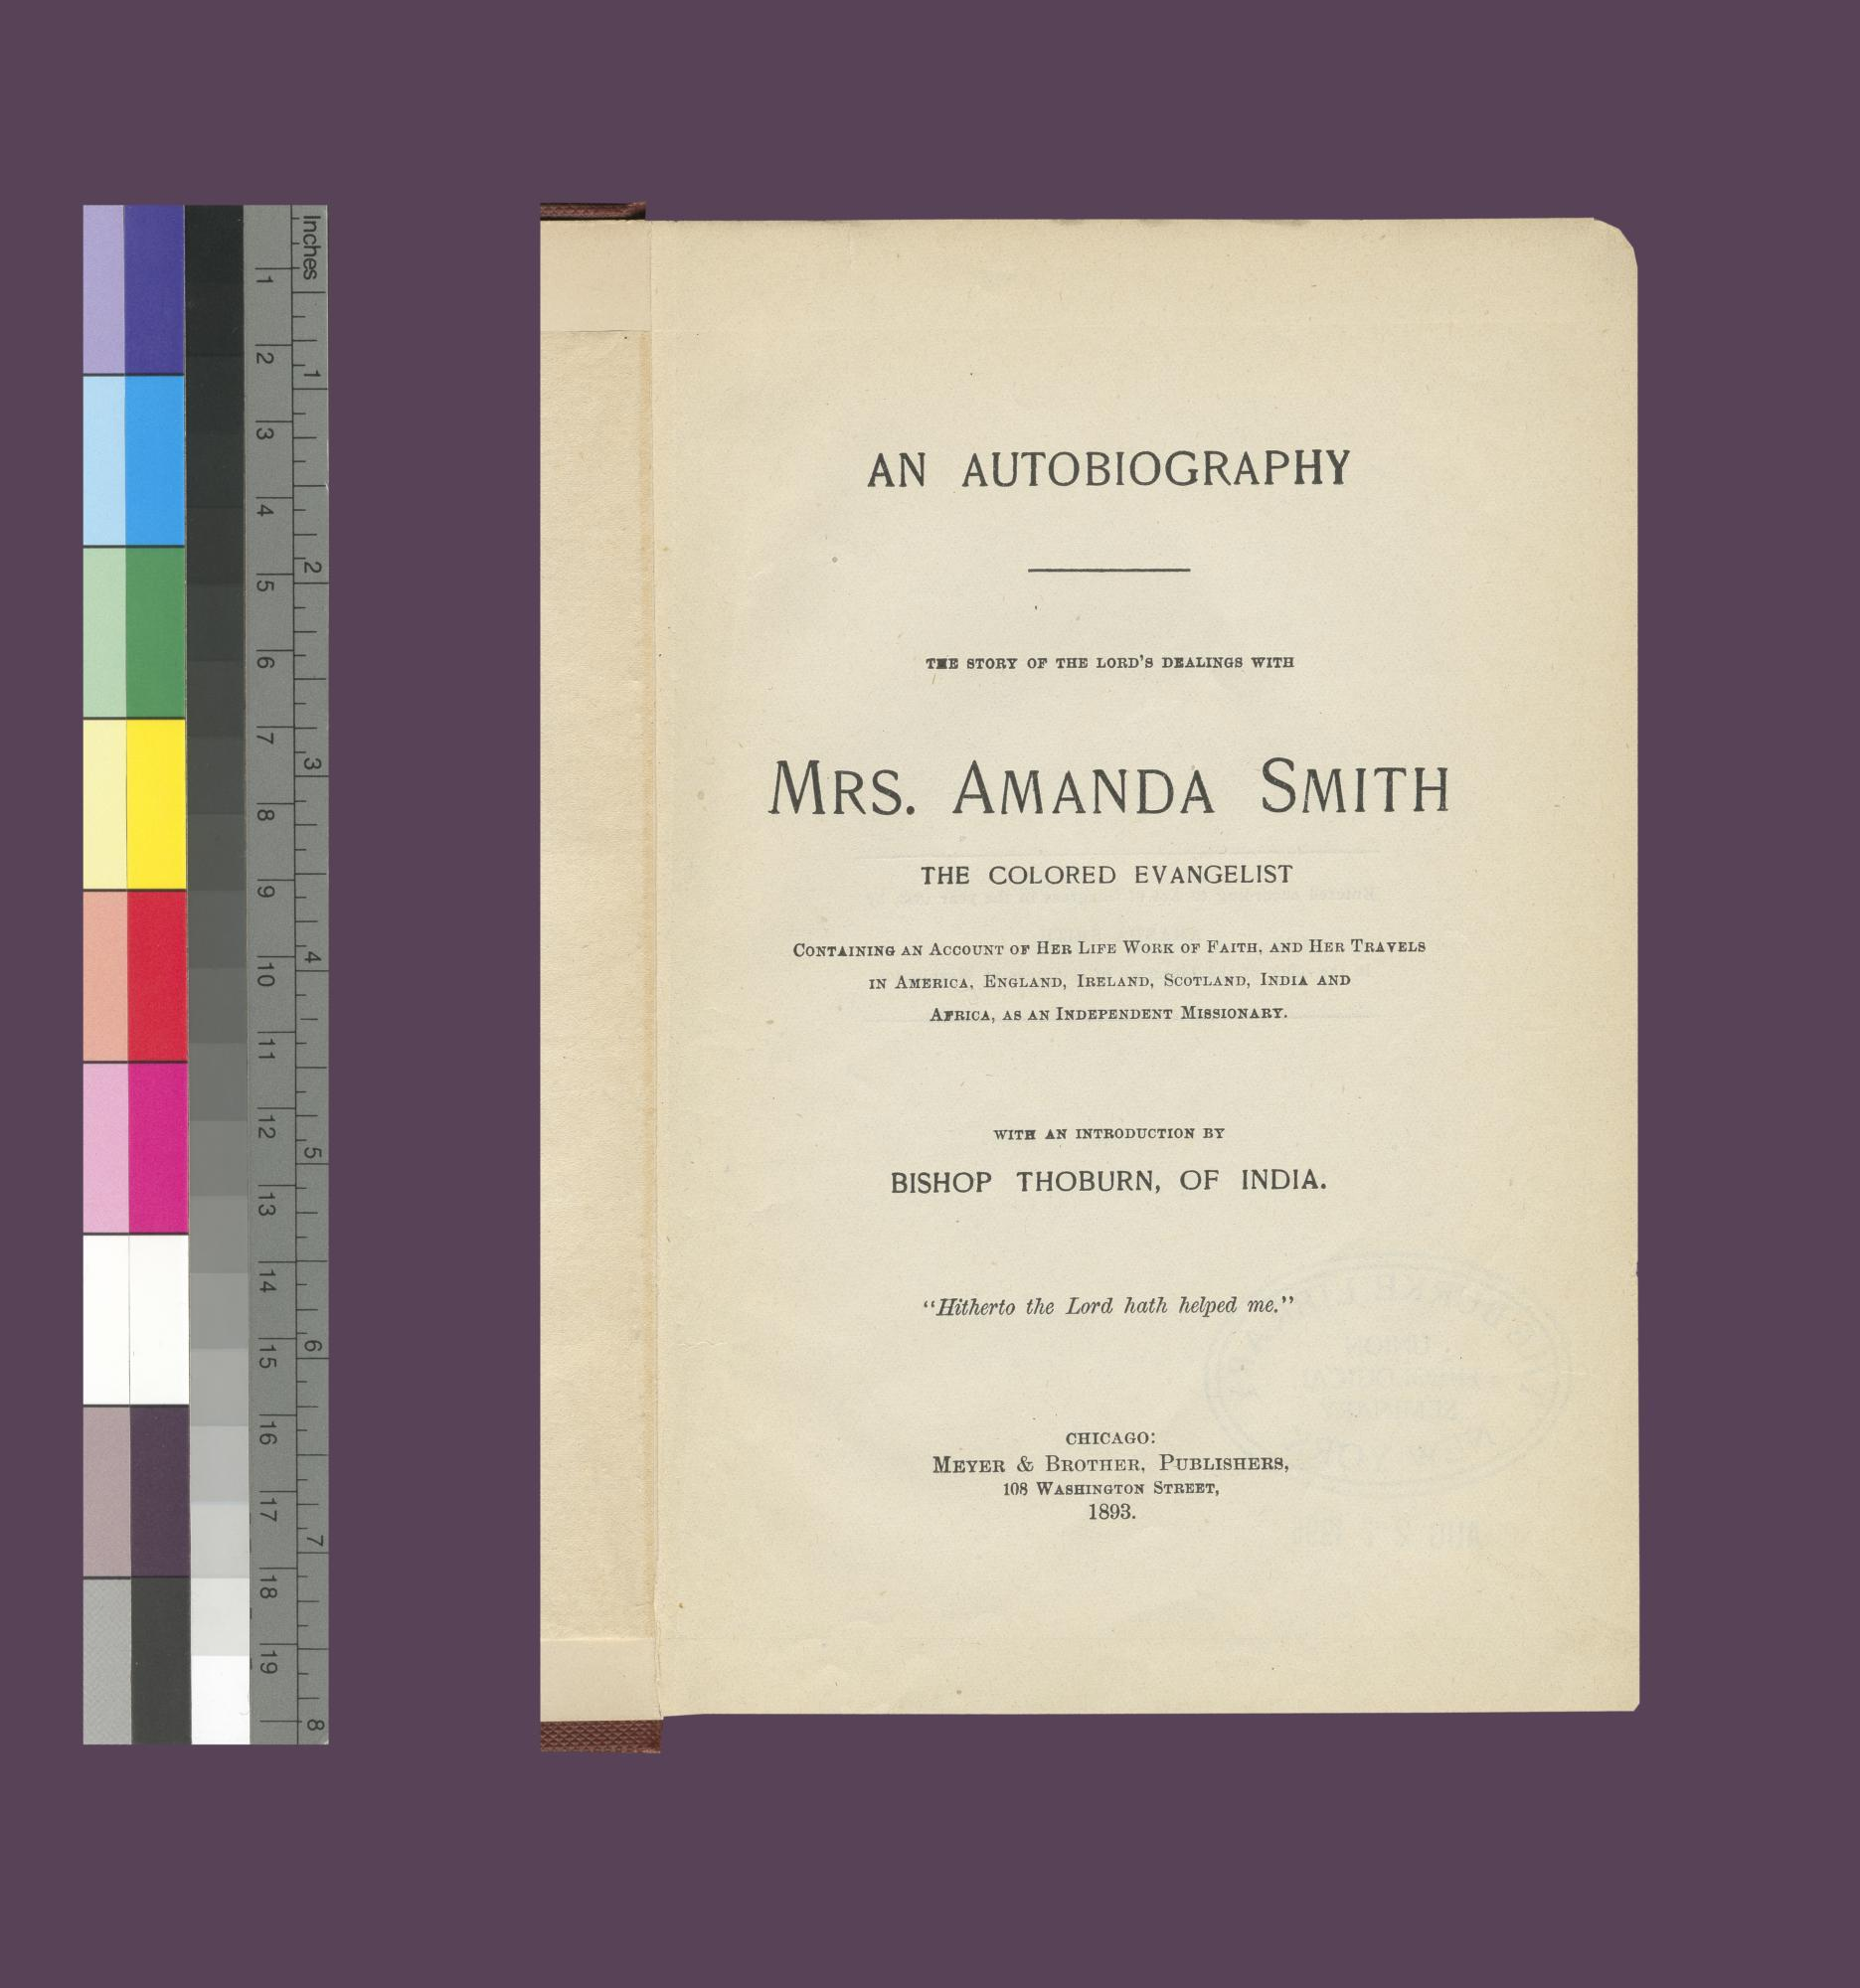 Autobiography: the story of the Lord's dealing with Mrs. Amanda Smith, the Colored Evangelist; containing an account of her life and work of faith, and her travels in America, England, Ireland, Scotland, India and Africa, as an Independent Missionary